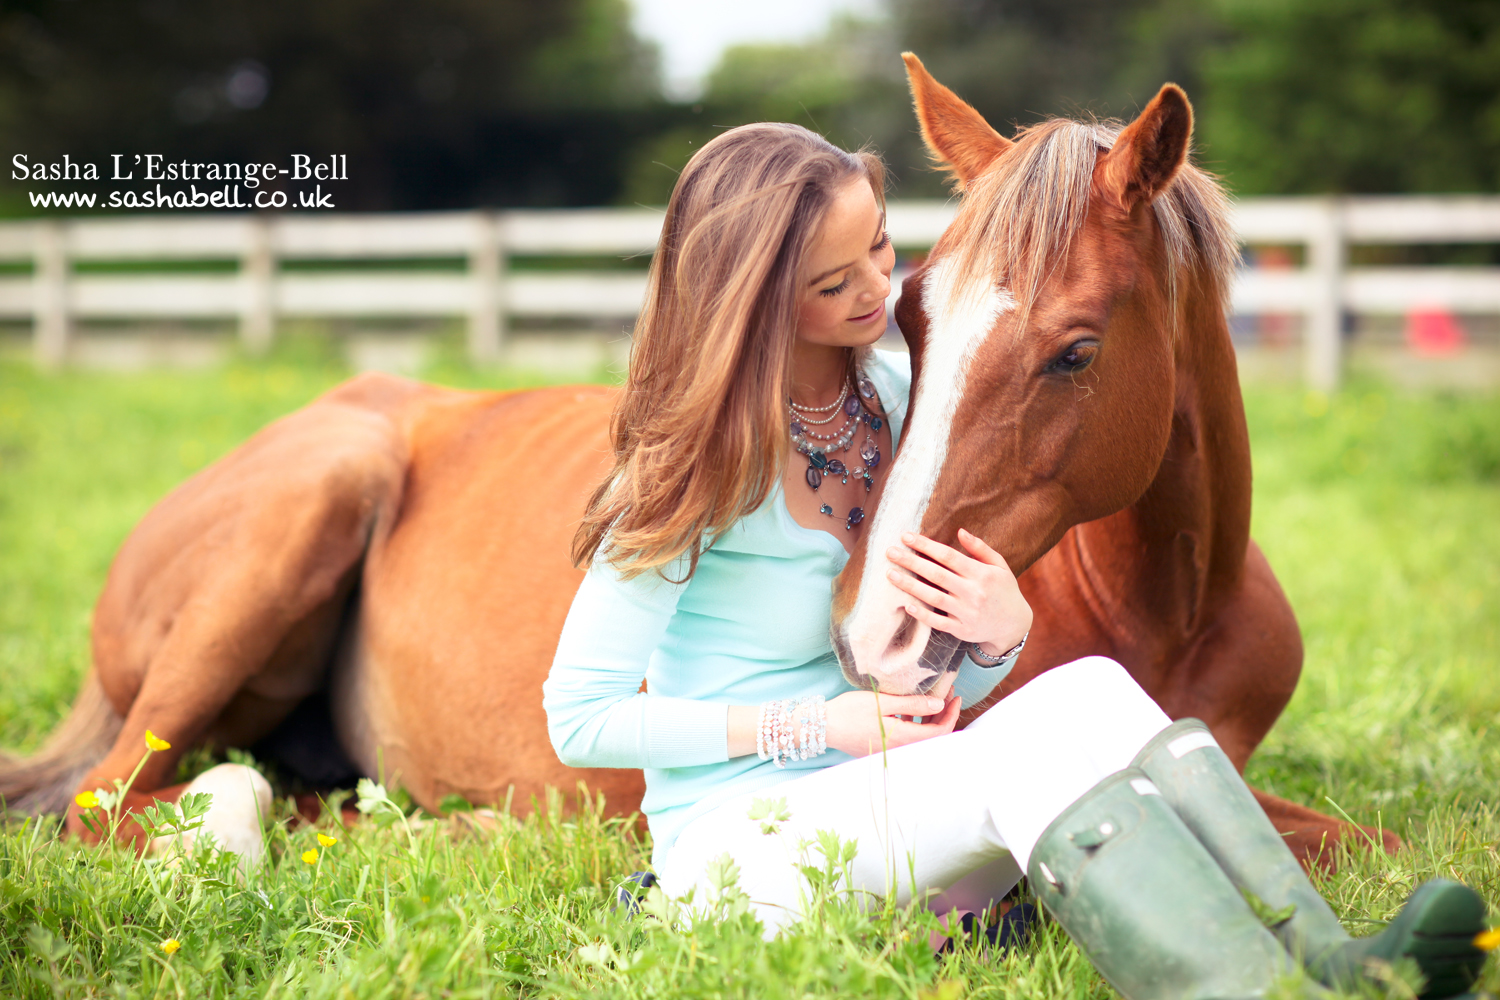 Chestnut Horse Lying Down with Girl